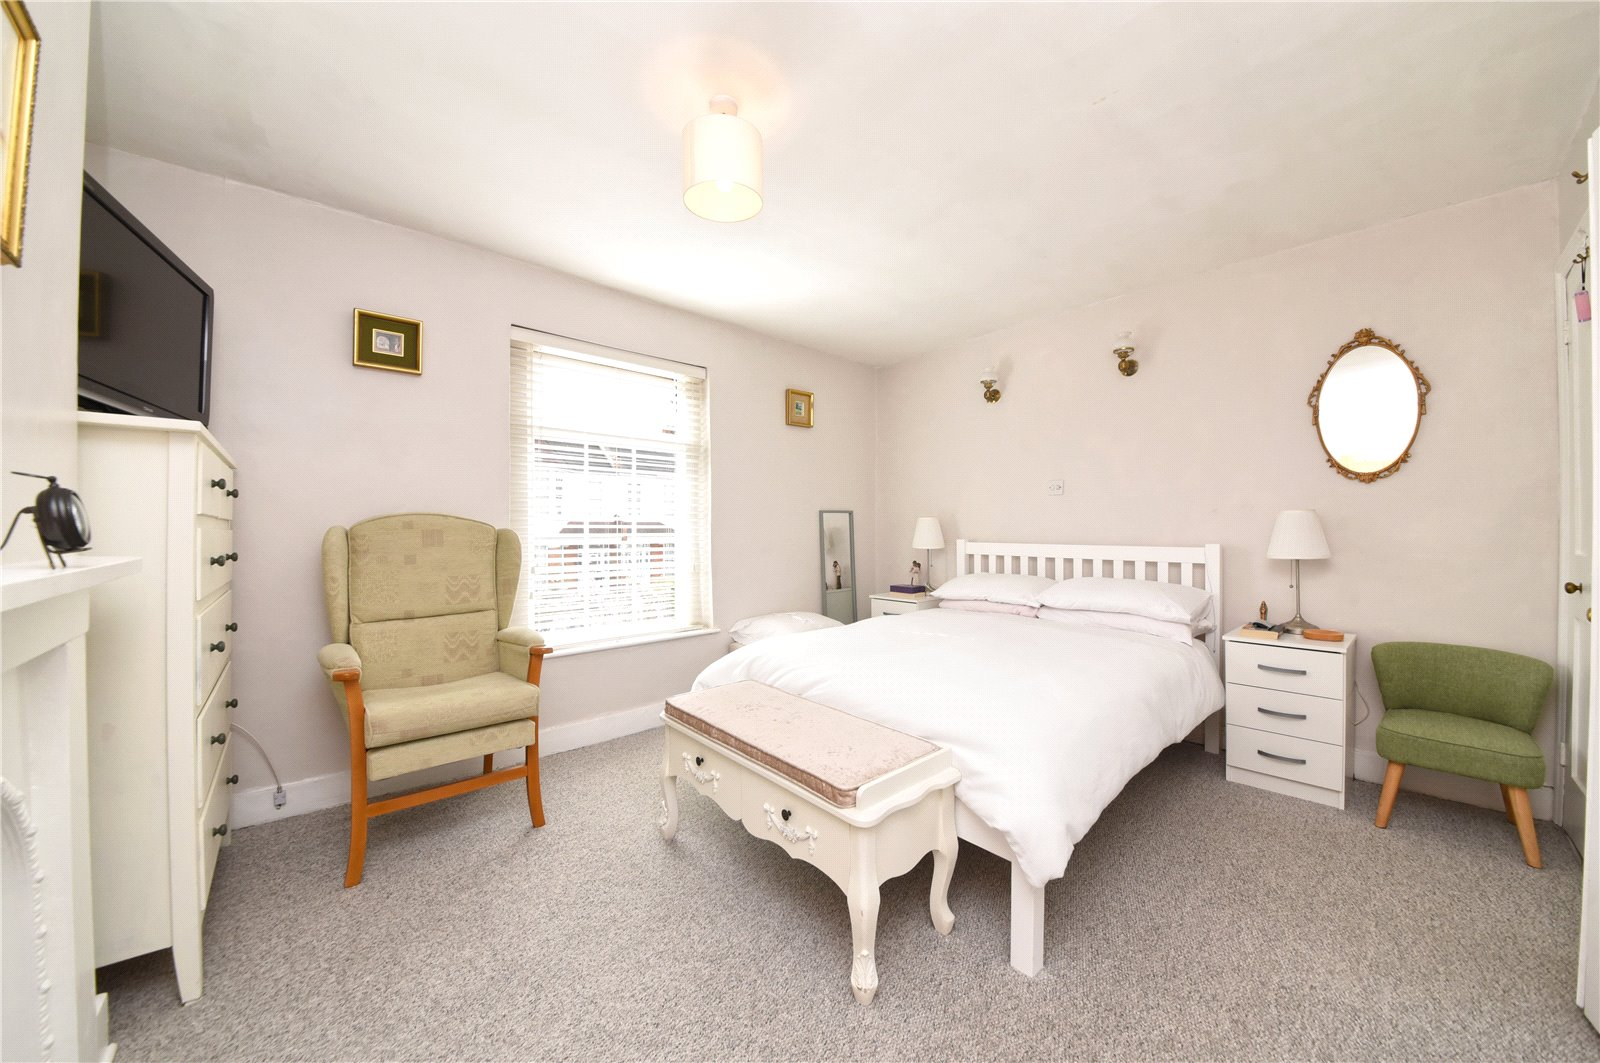 2 bed house for sale in London, N12 9JN 2